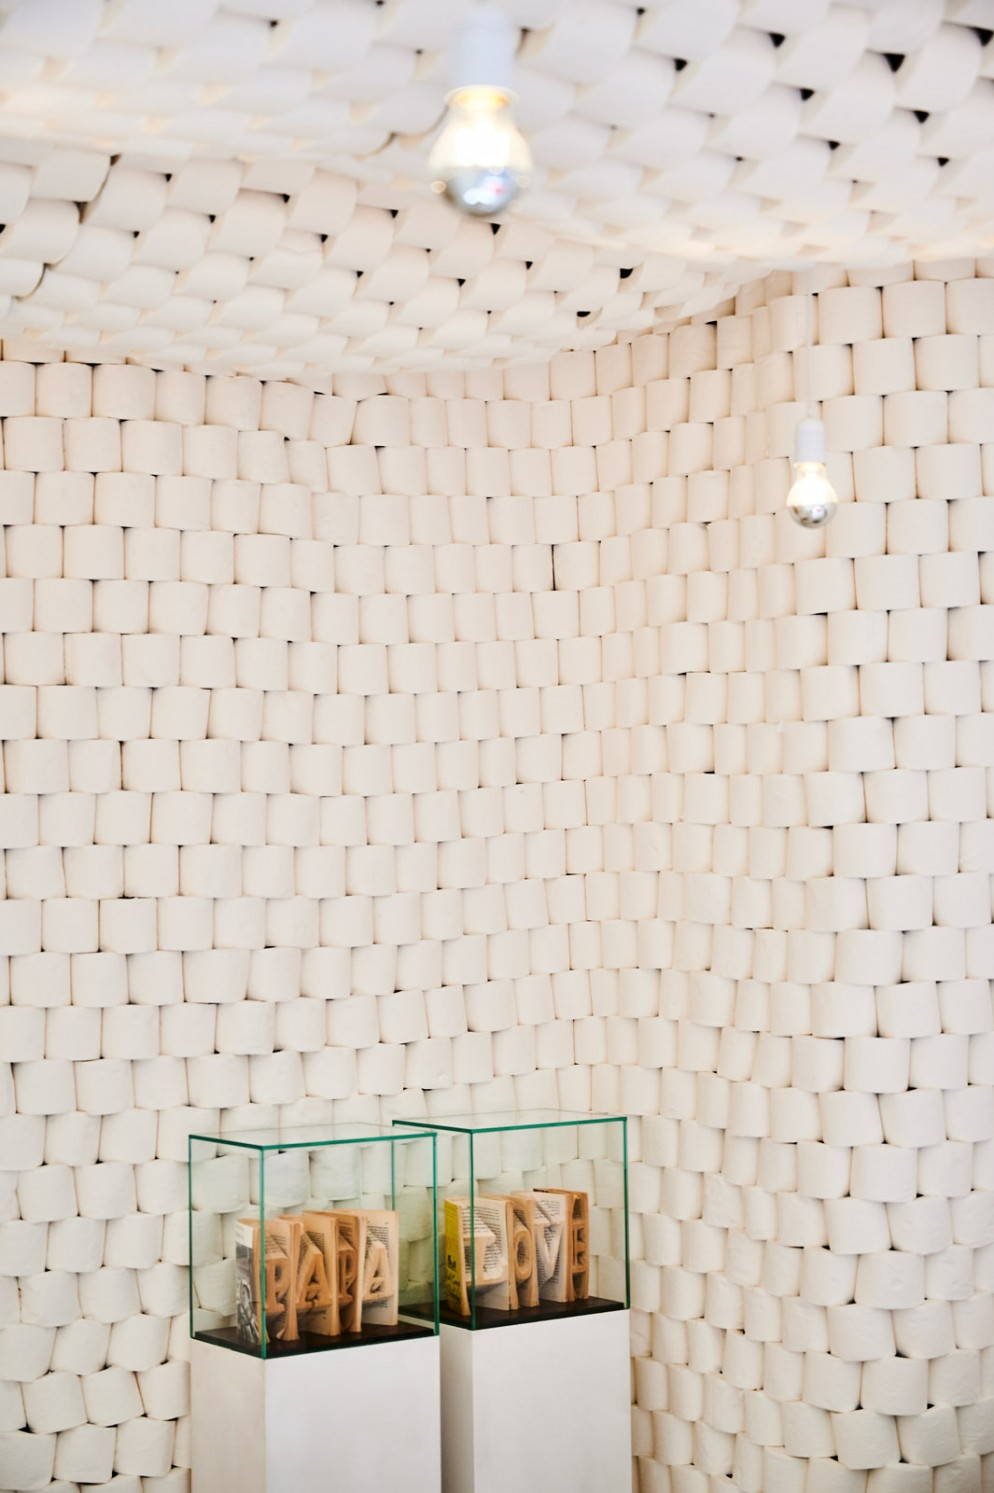 pop-up-store-bruxelles-charles-kaisin-10